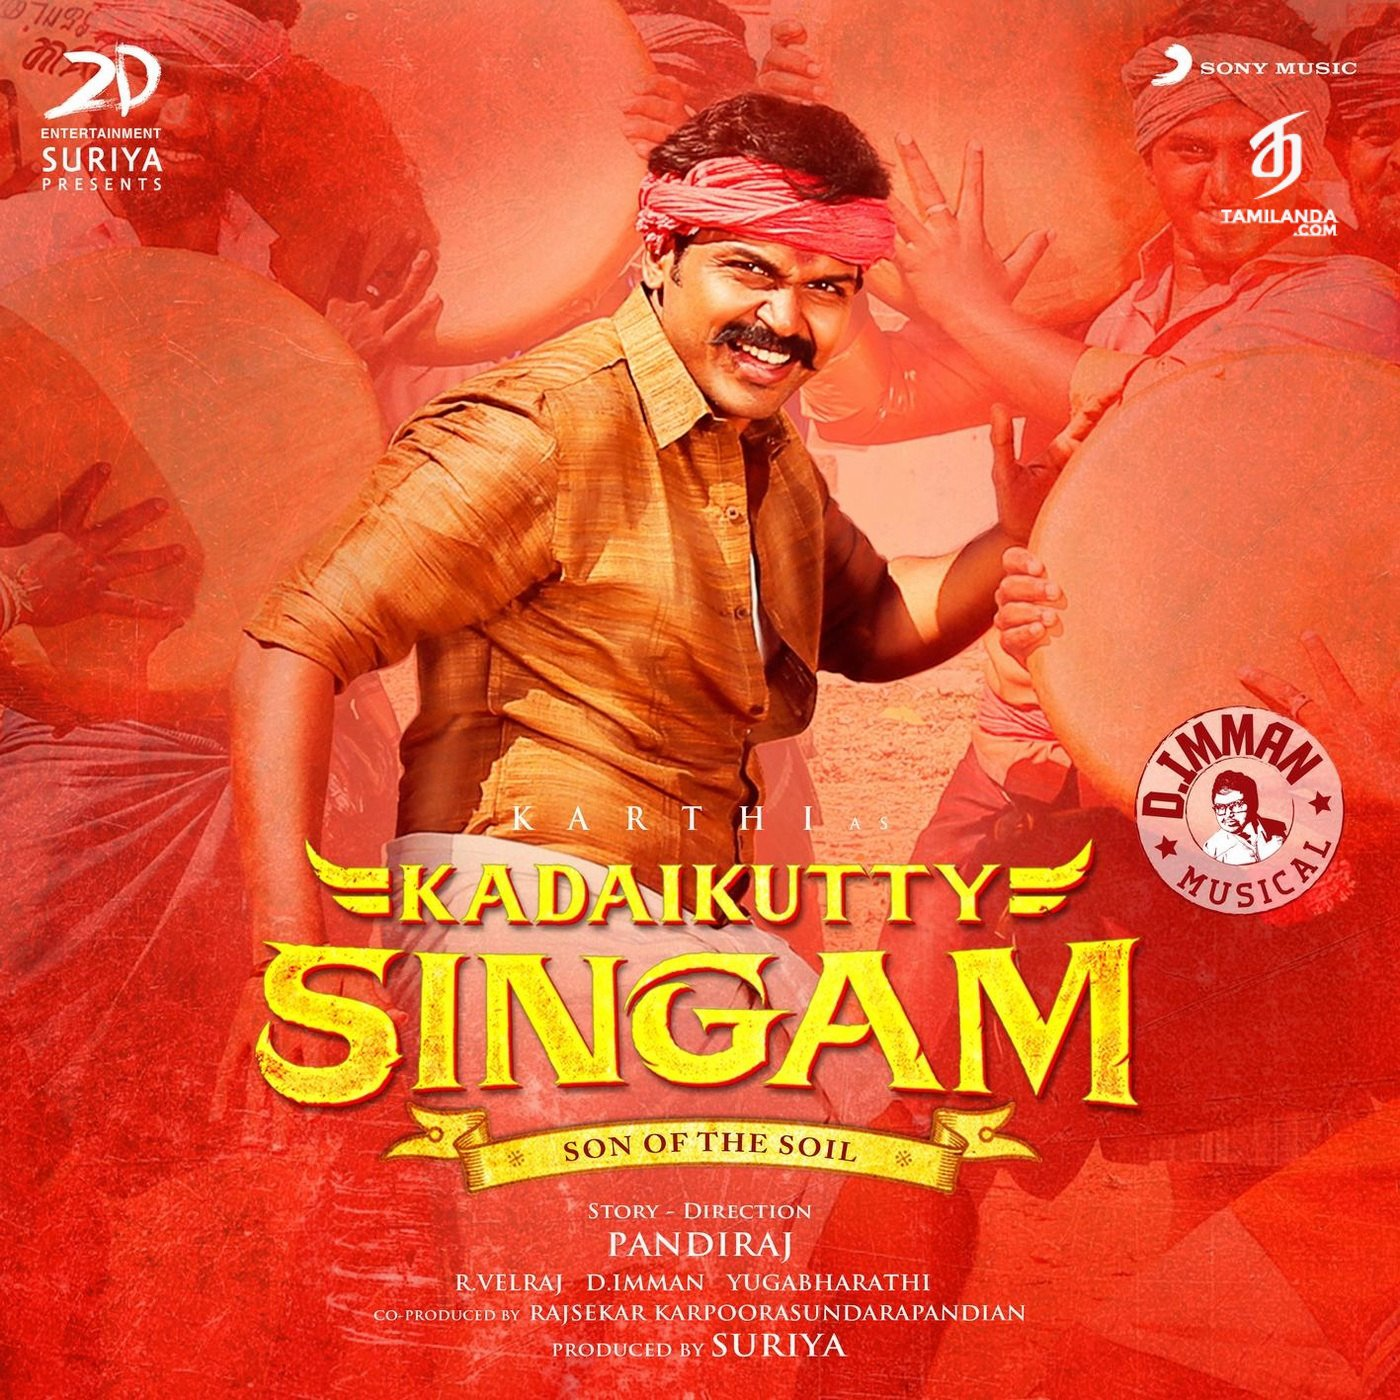 Kadaikutty Singam 24 BIT FLAC Songs